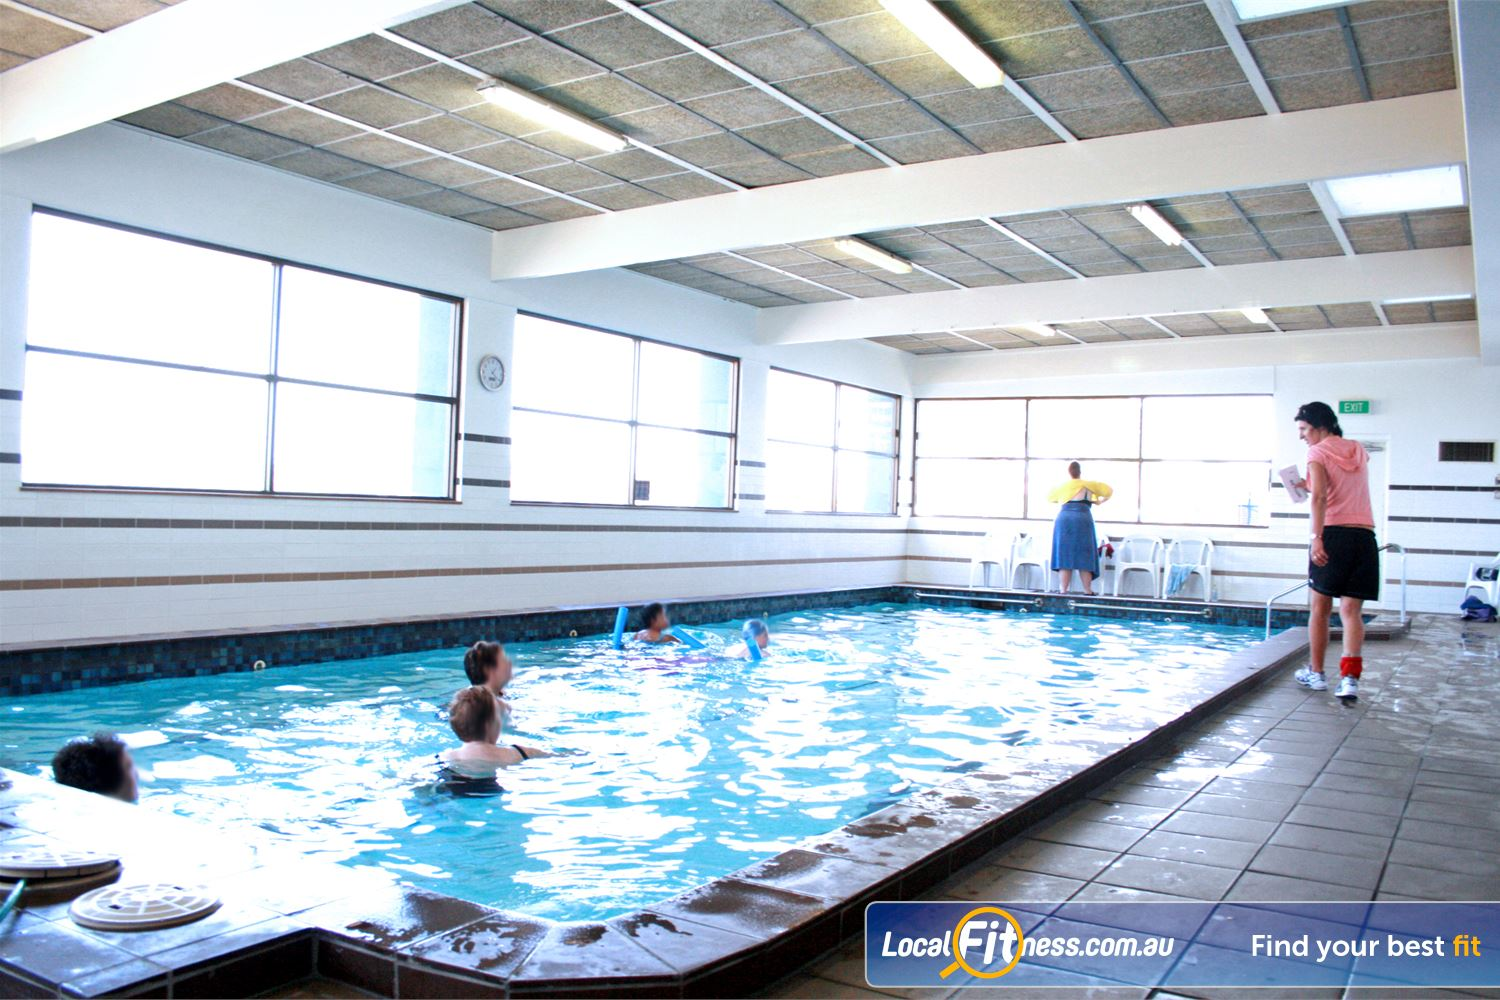 Goodlife Health Clubs Hoppers Crossing Try one of our aquatic classes.